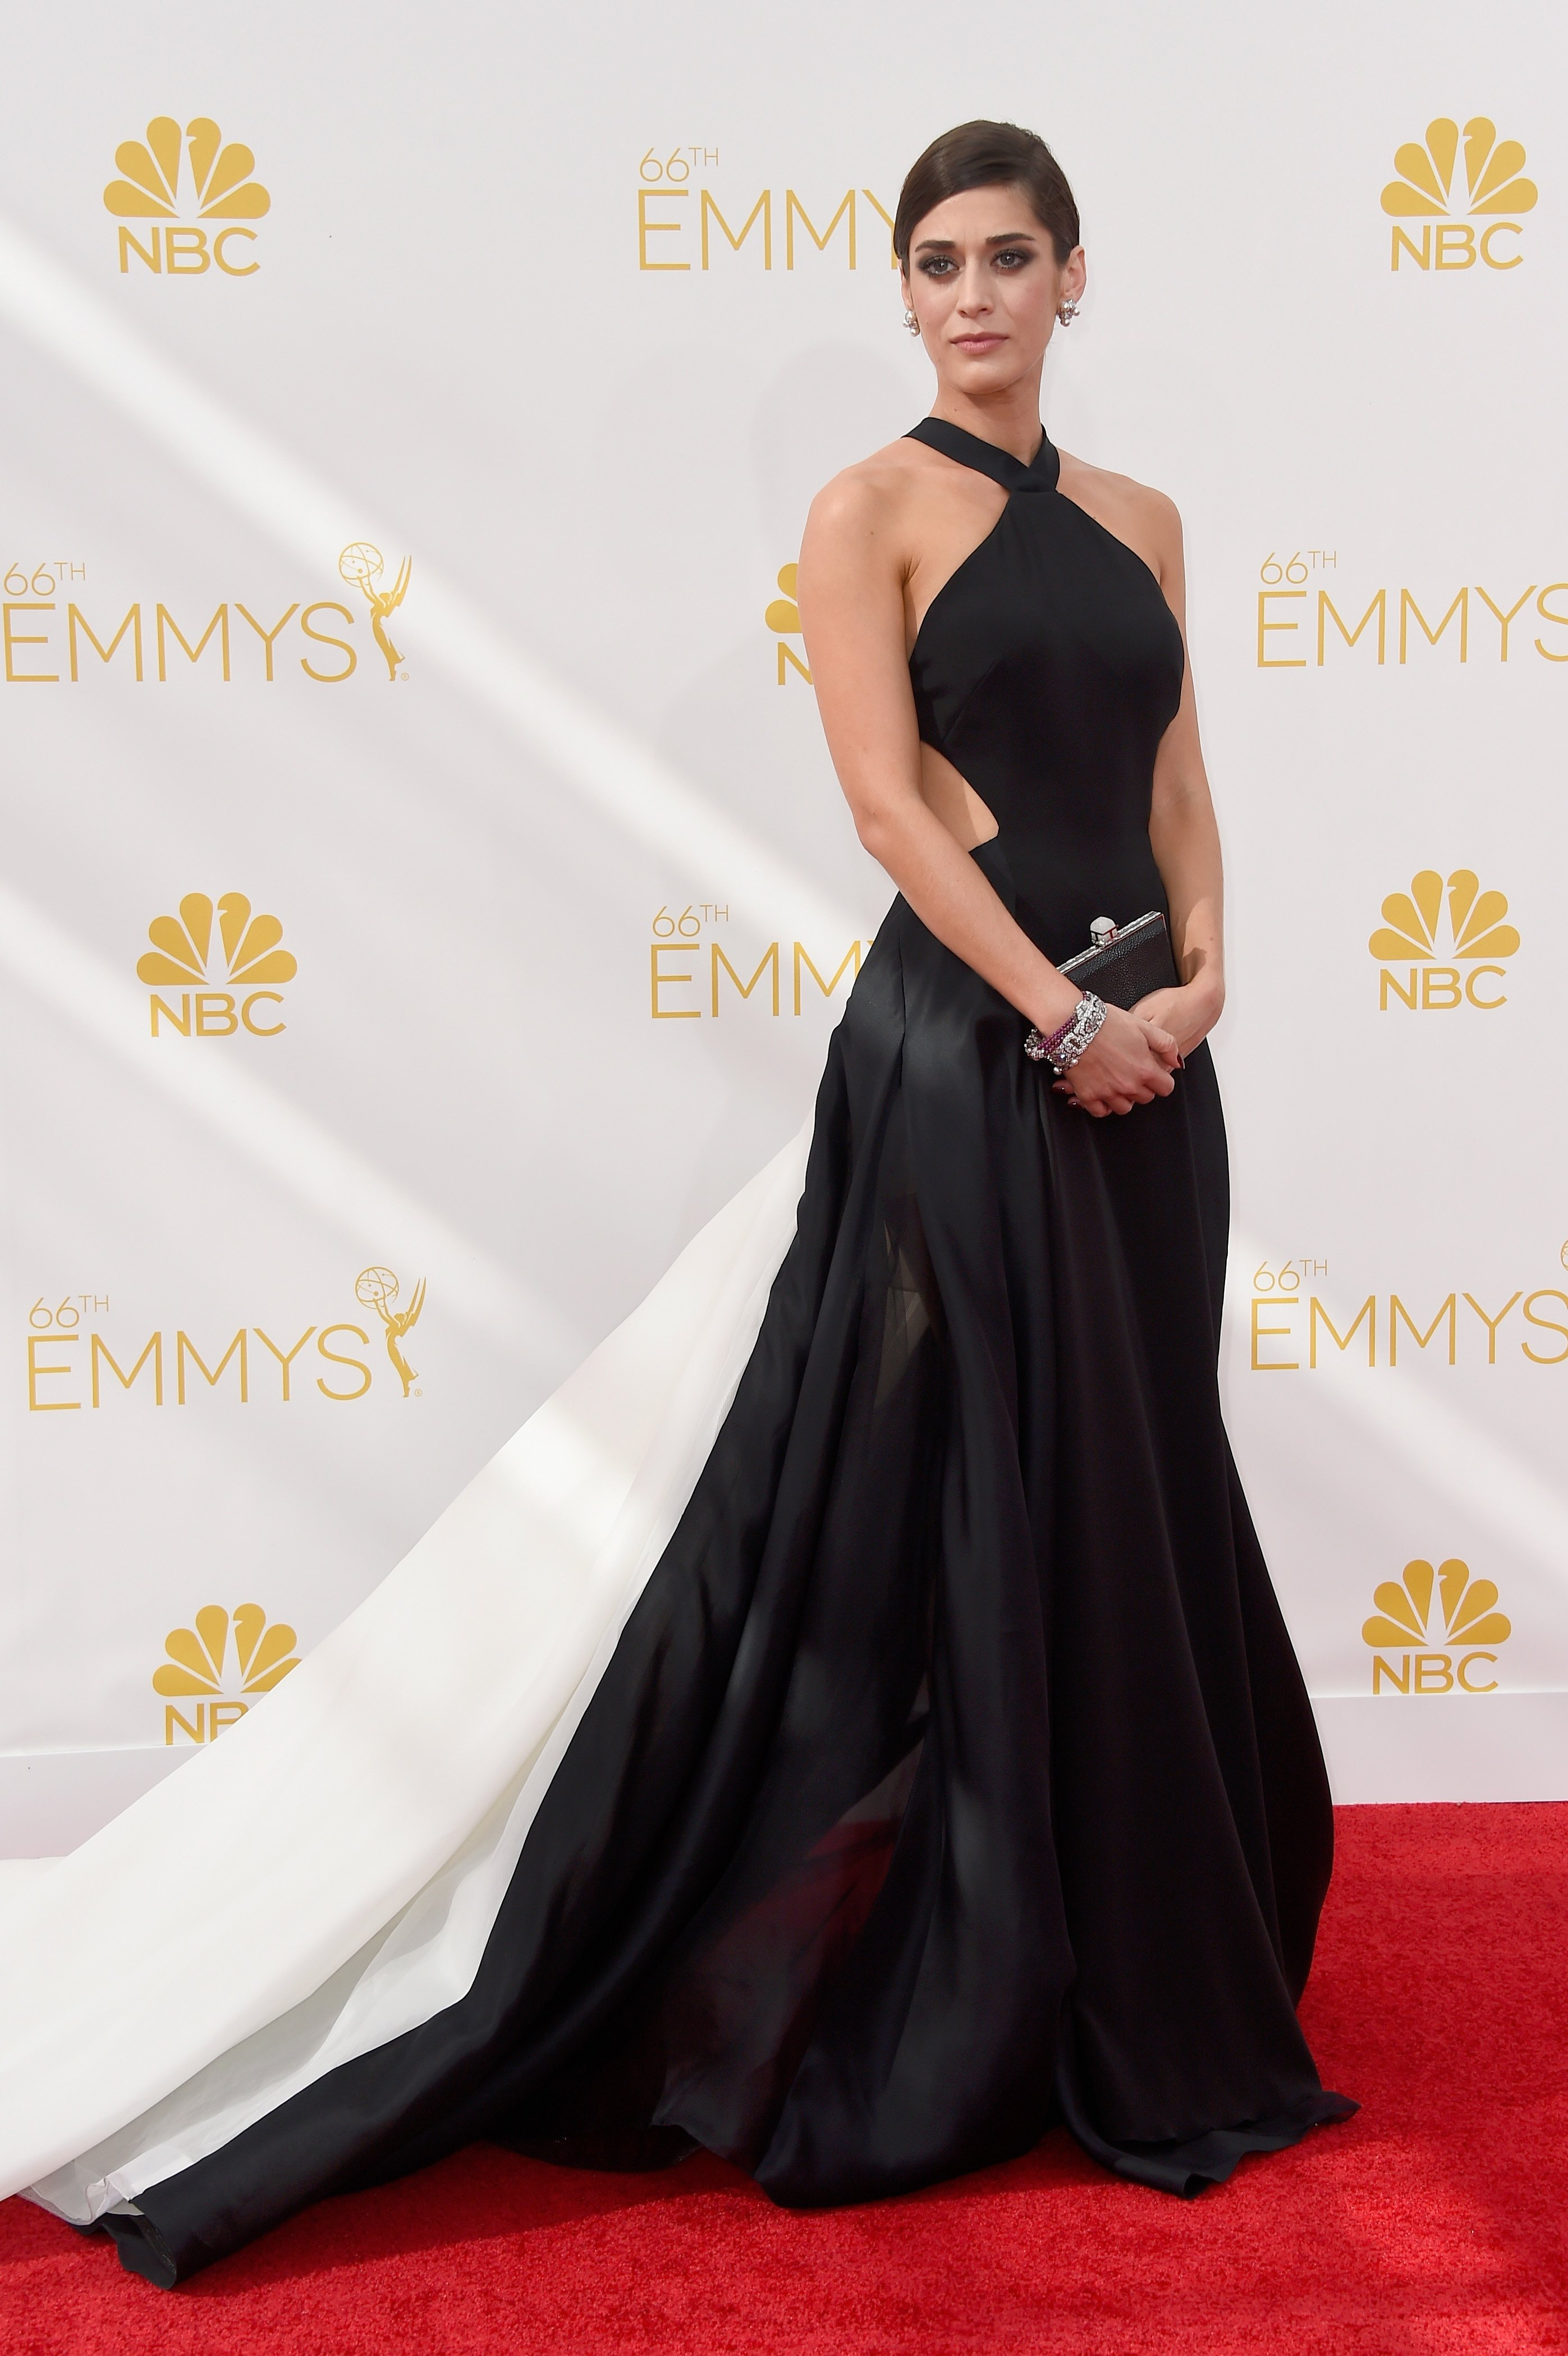 Lizzy Caplan attends the 66th Annual Primetime Emmy Awards held at Nokia Theatre L.A. Live on August 25, 2014 in Los Angeles, California.